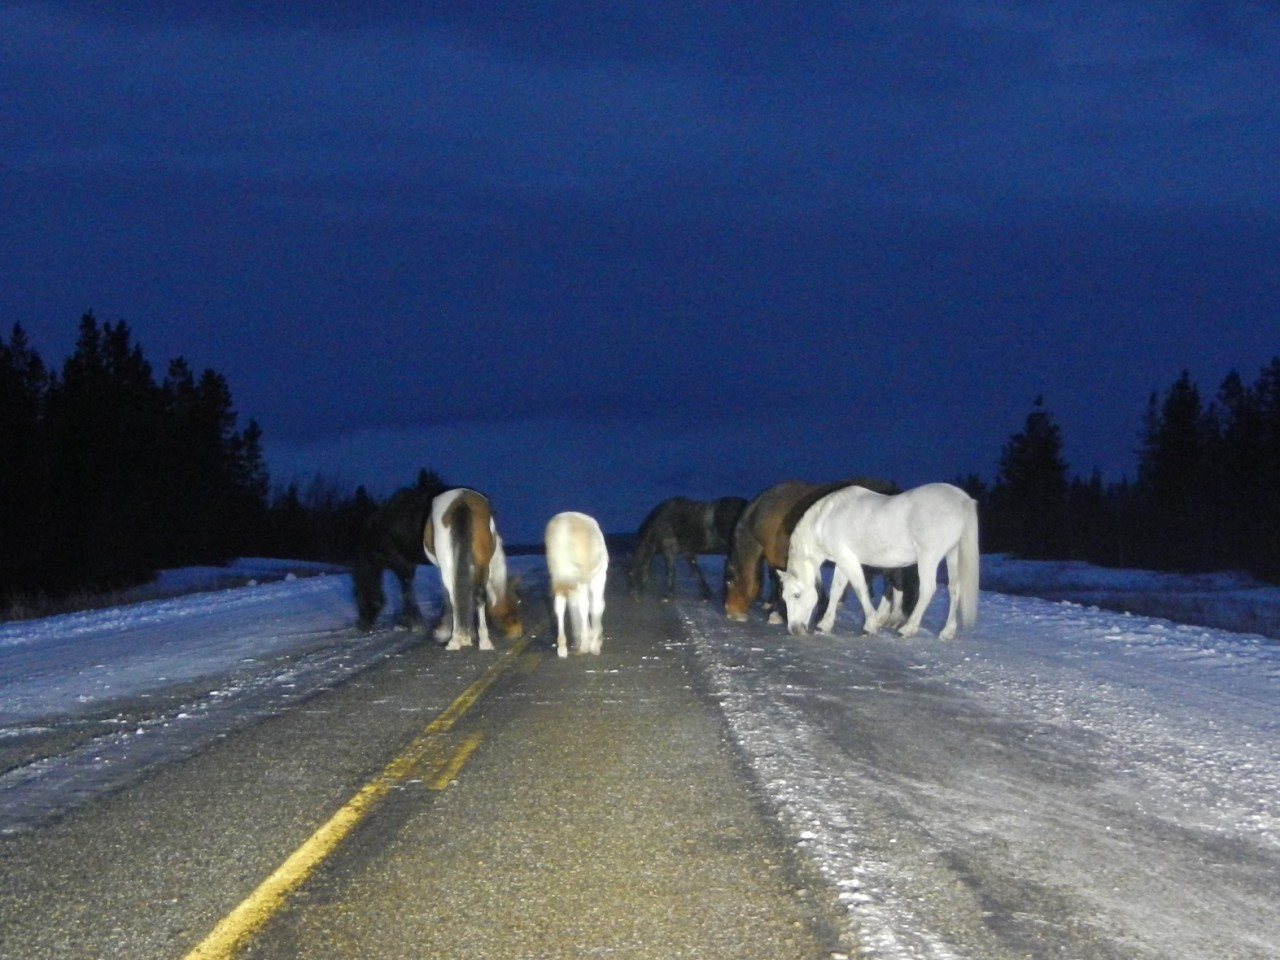 Horses licking the salt off the highway